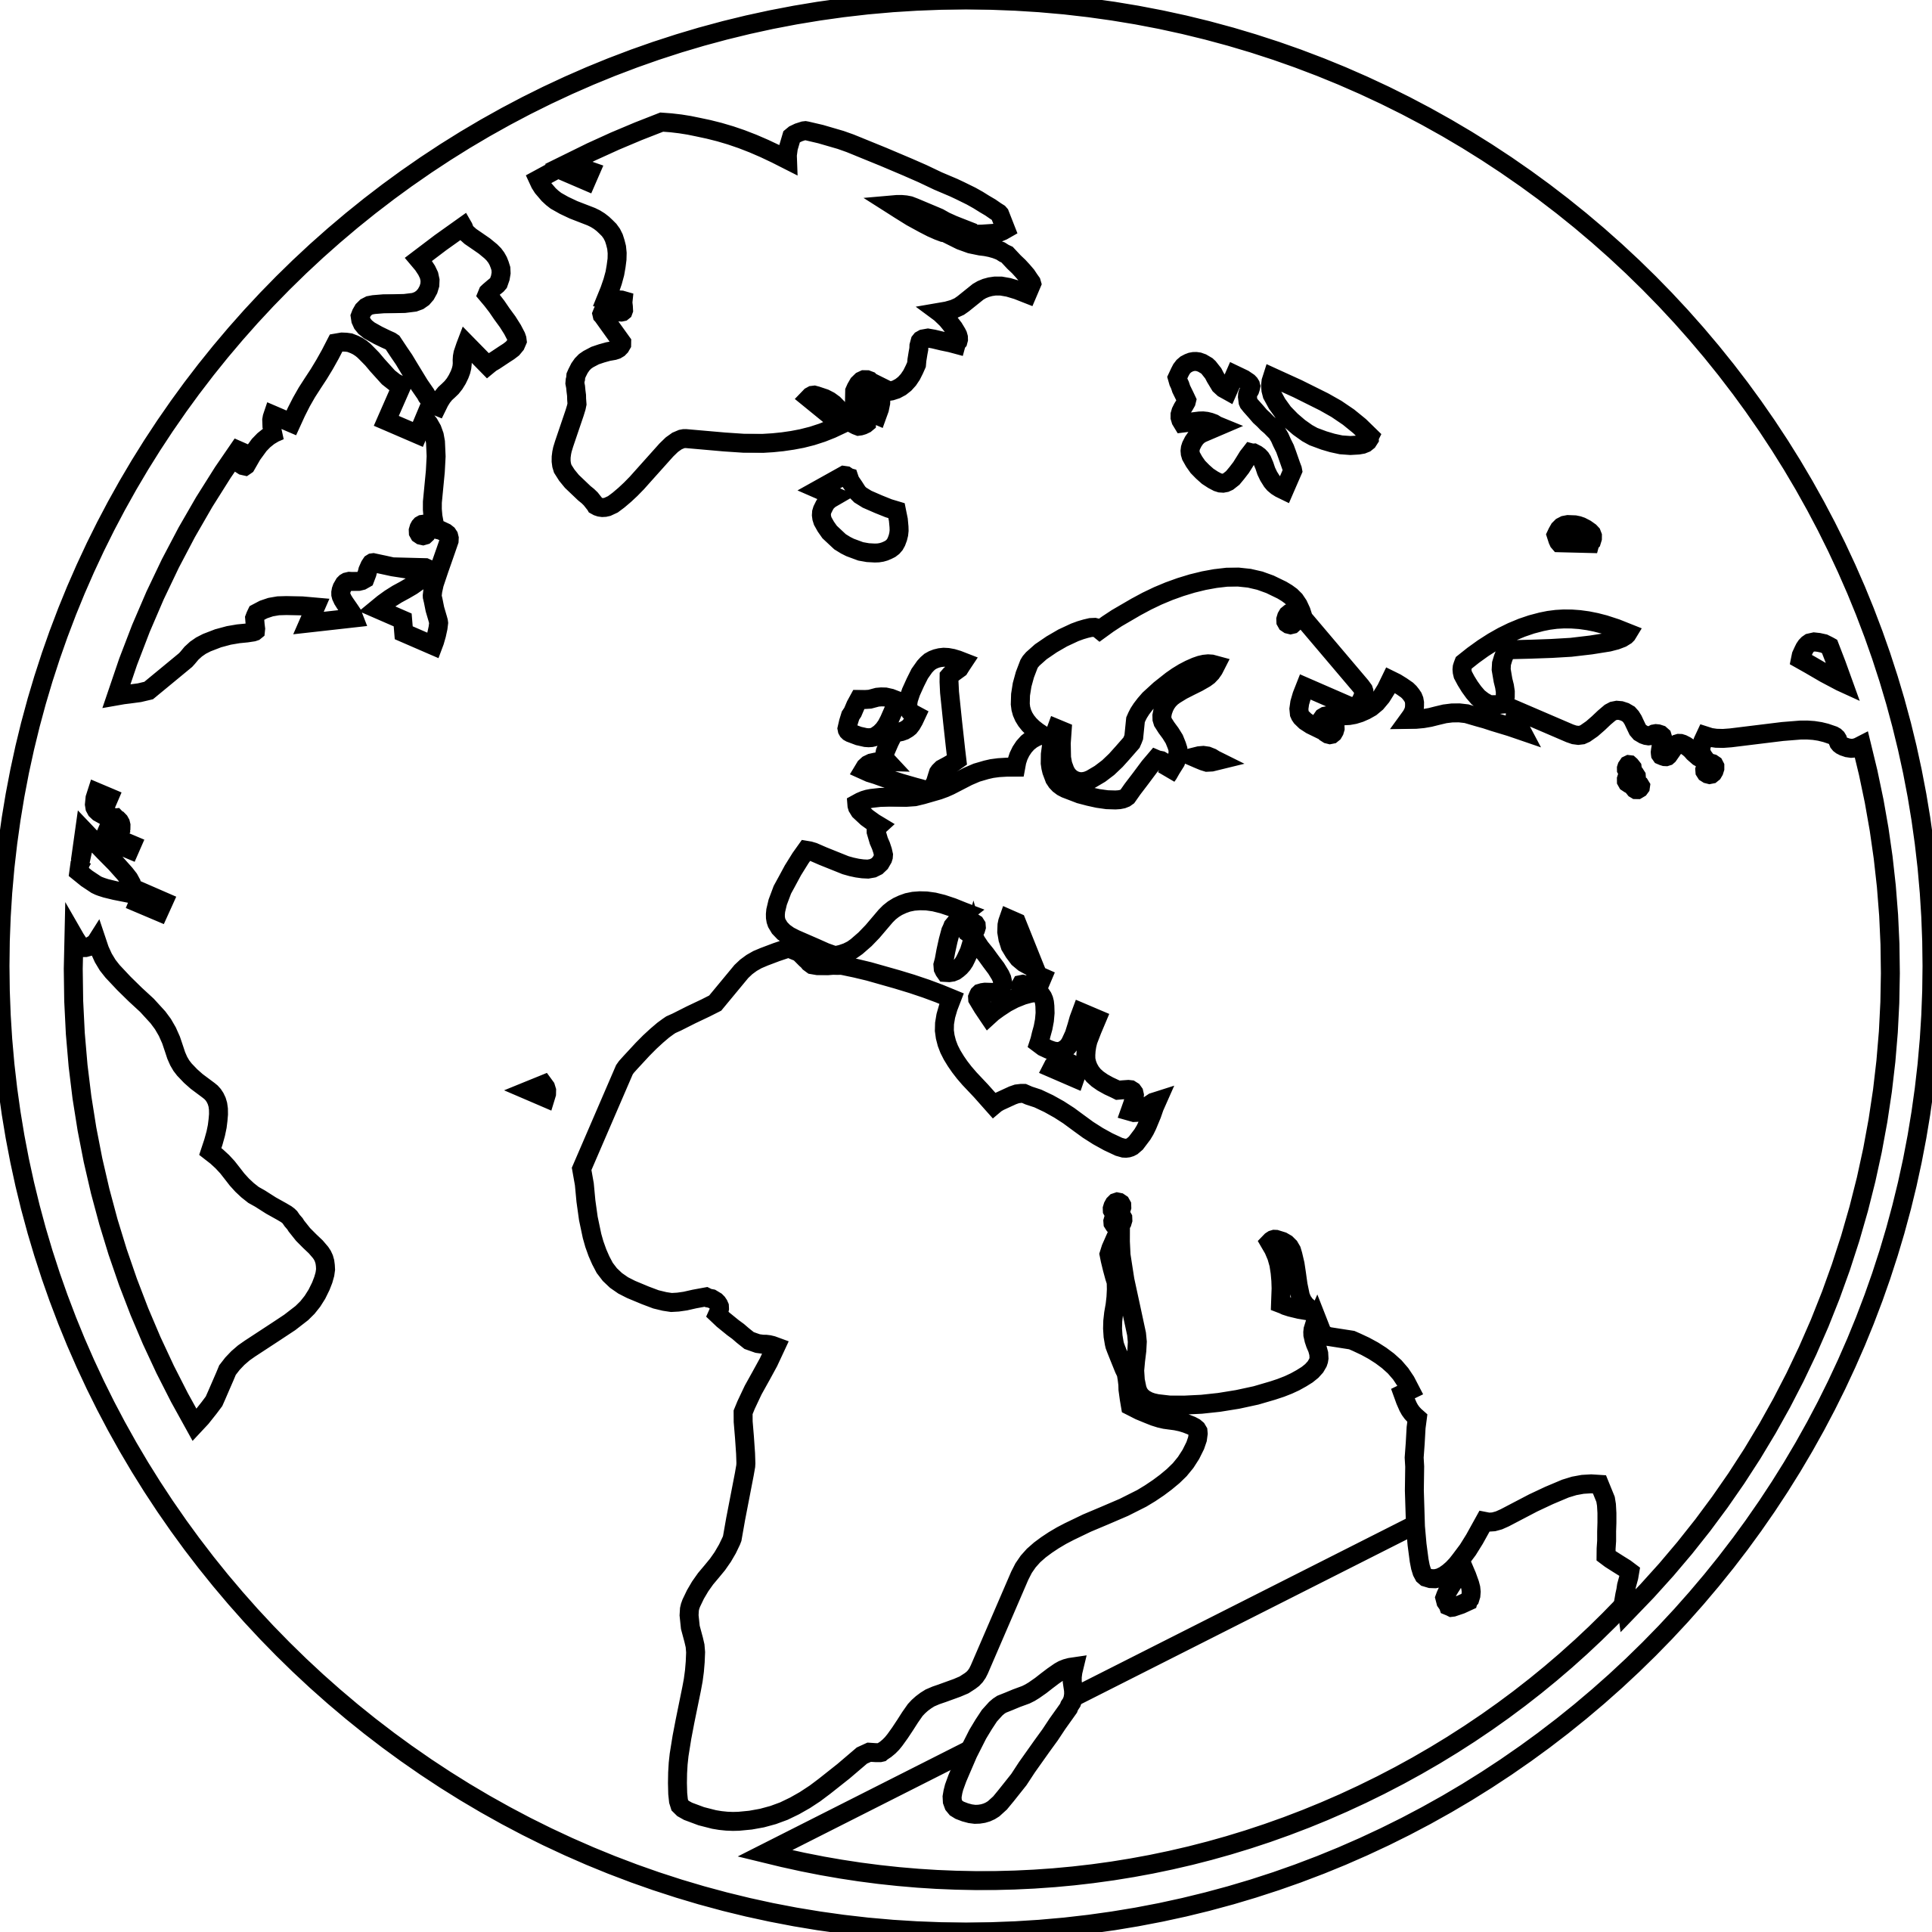 planet earth clipart black and white - photo #22